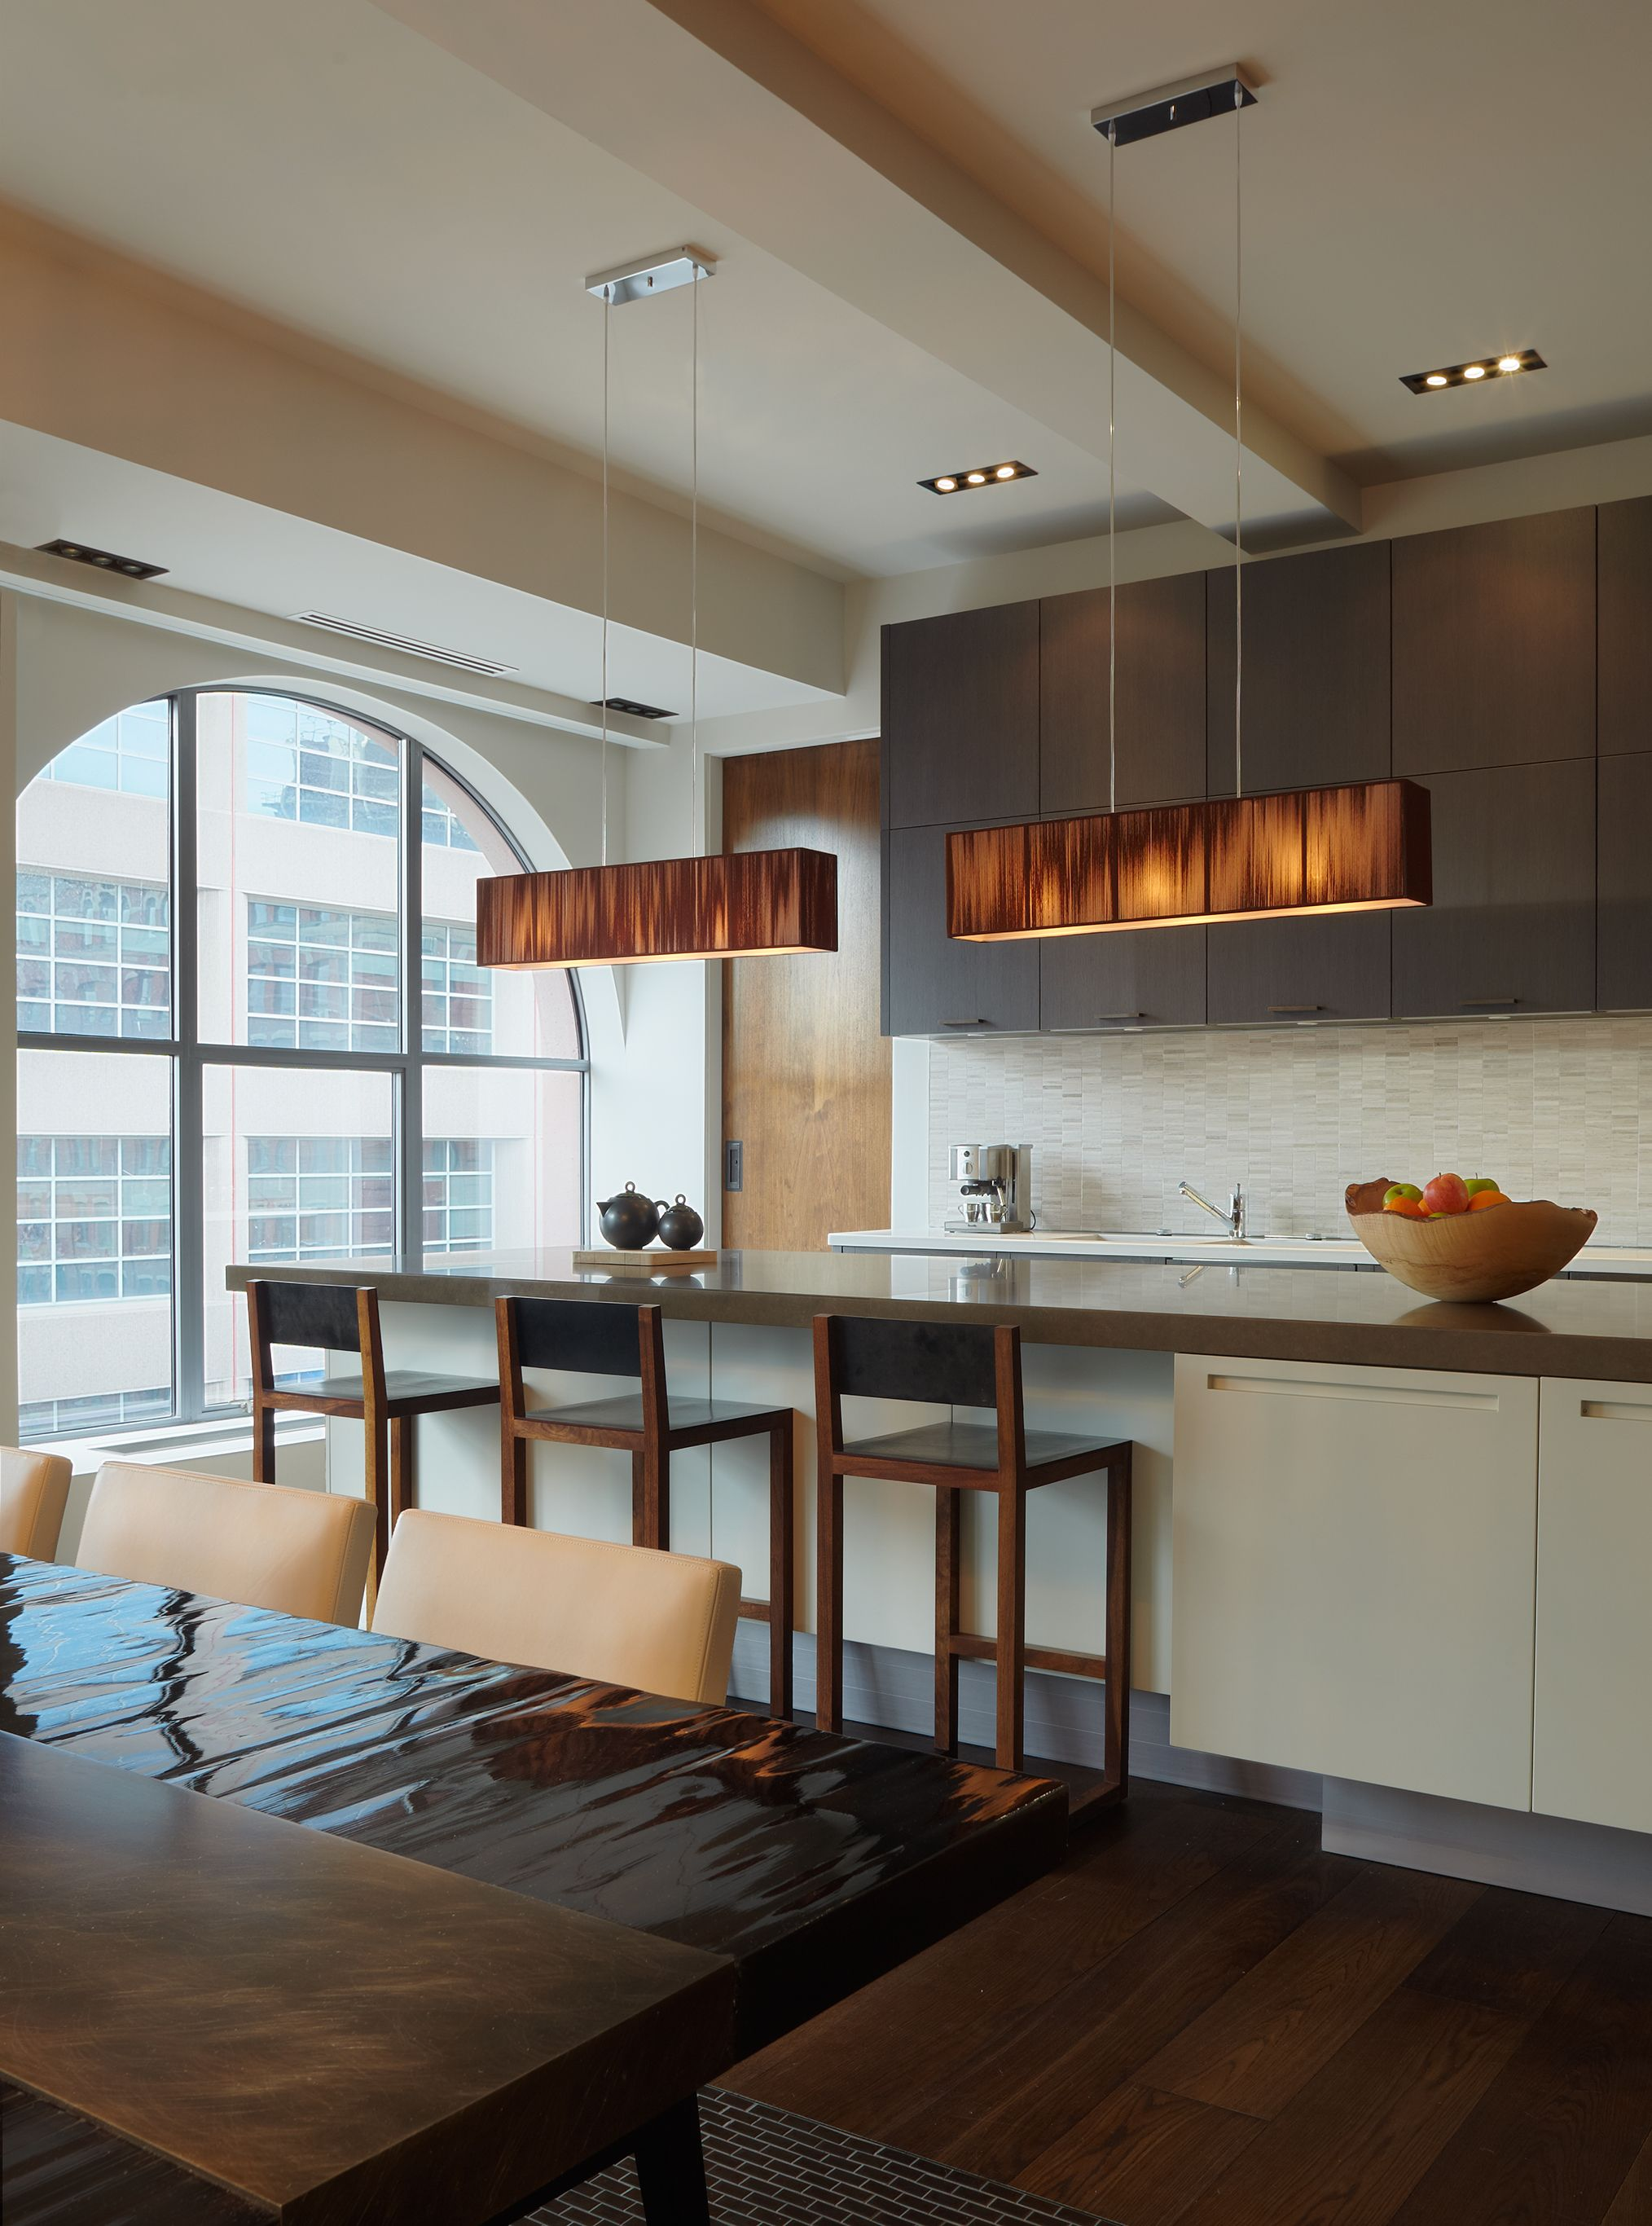 Tribeca Residence Purvi Padia Design Home Kitchens Loft Kitchen Kitchen Interior